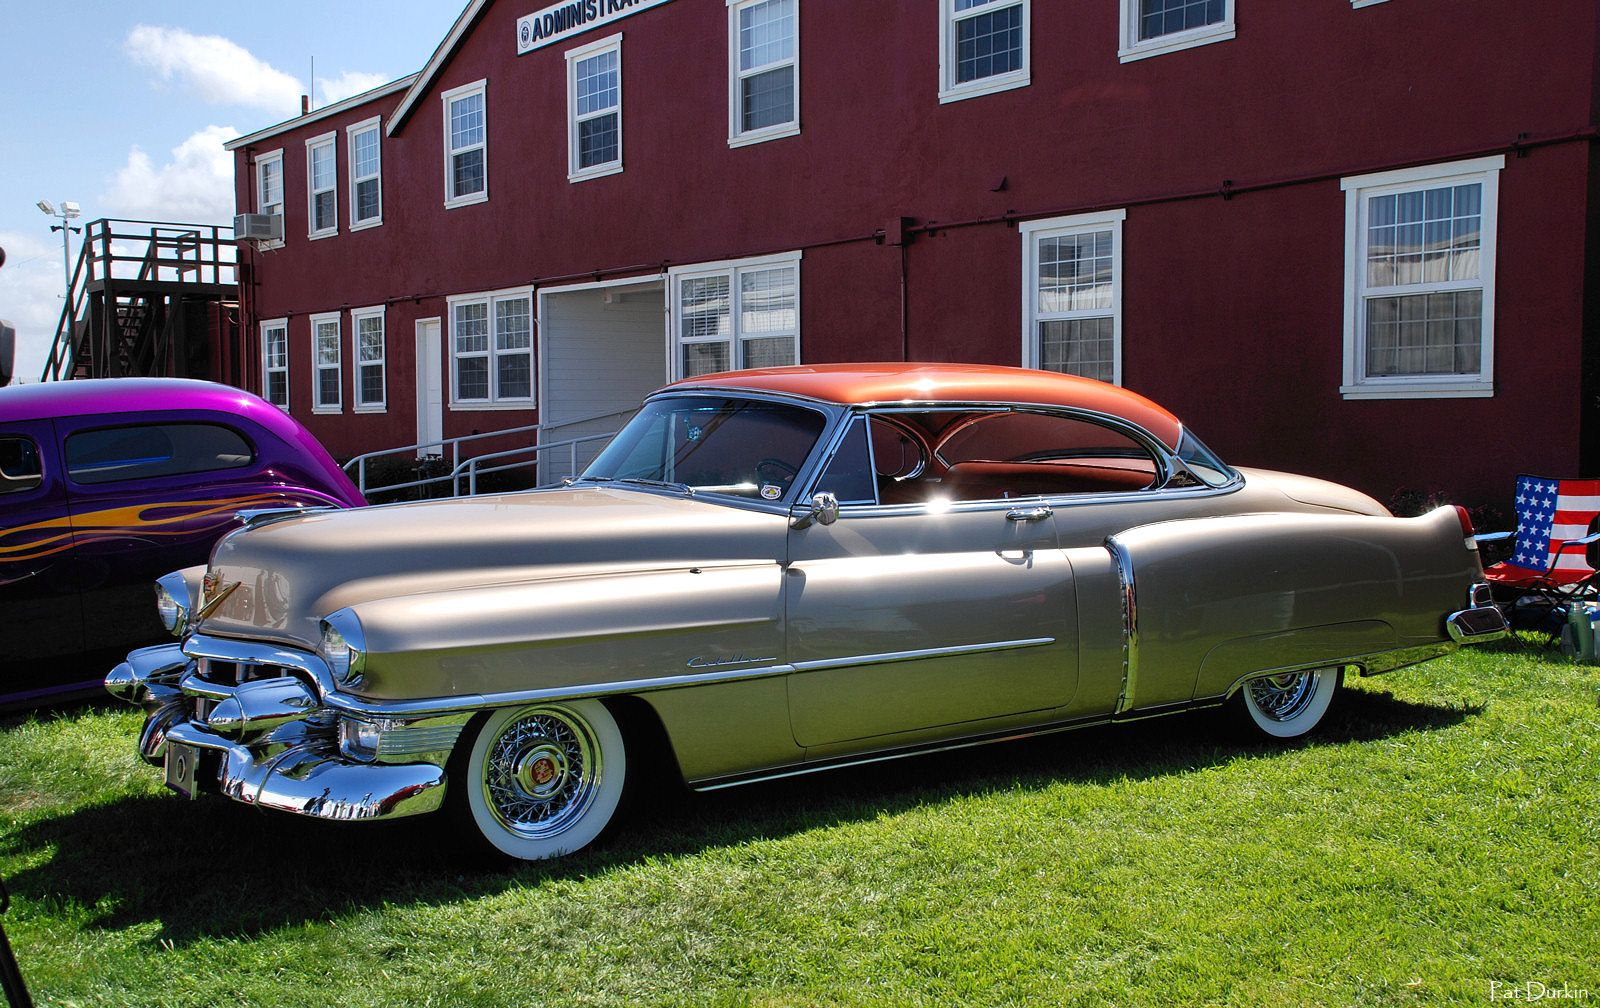 1953 Cadillac Coupe DeVille | Cadillac's, Lincolns and ...